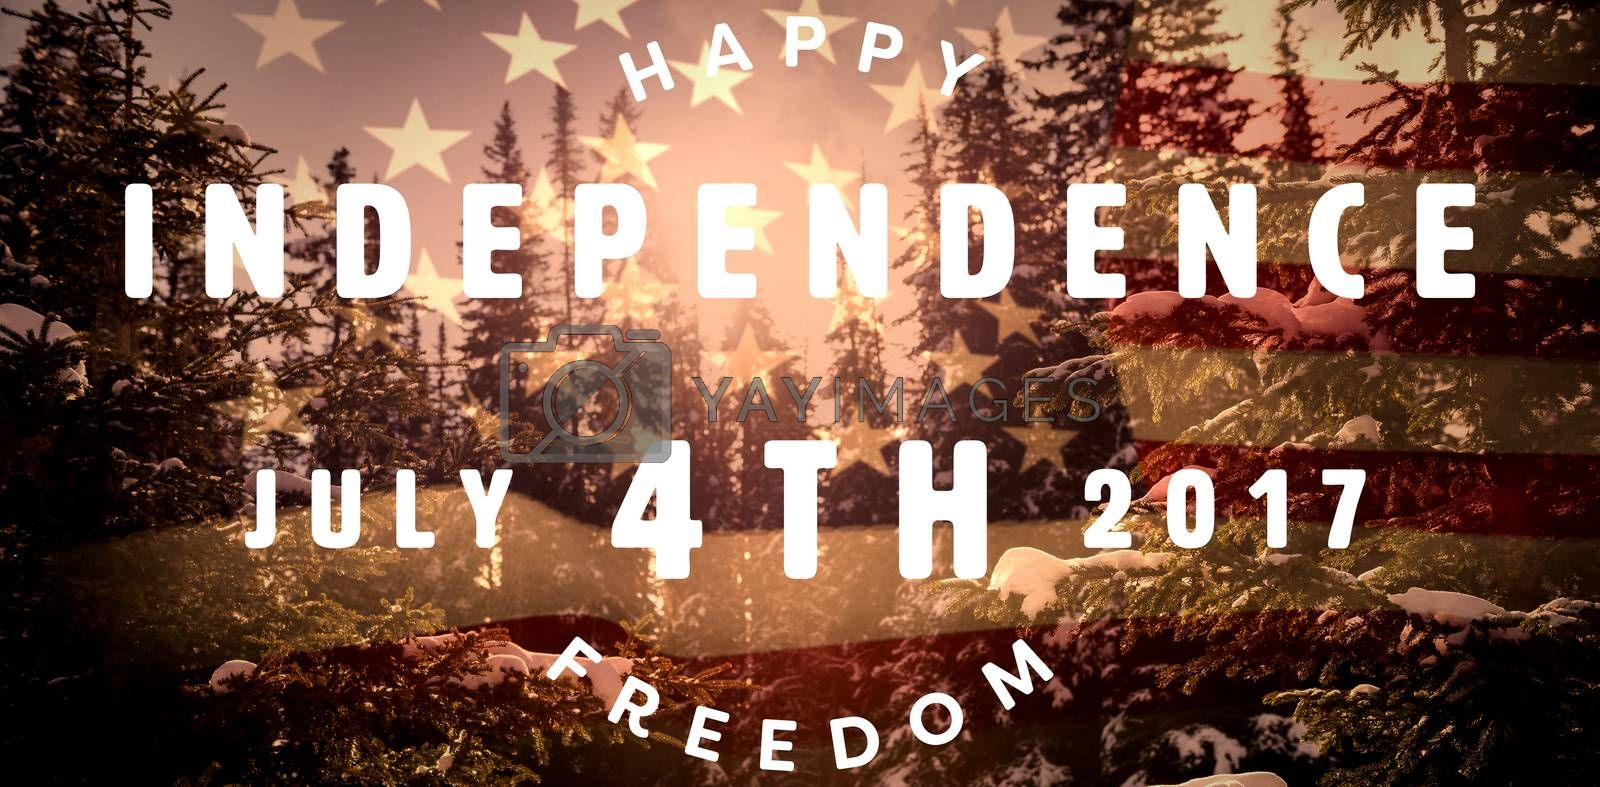 Royalty free image of Composite image of computer graphic image of happy 4th of july text by Wavebreakmedia